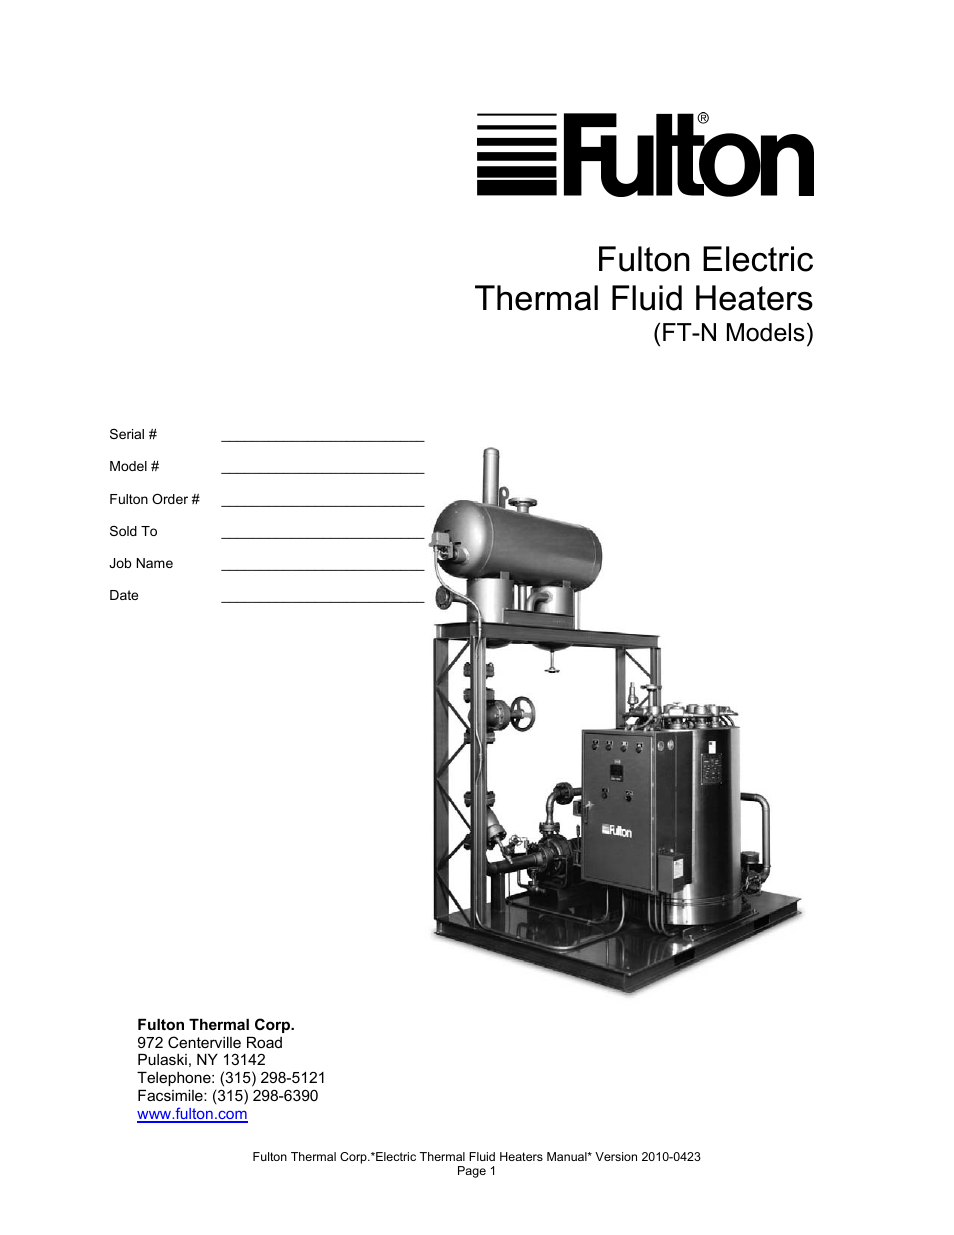 Fulton Vertical Electric (FT-N) Thermal Fluid (hot oil